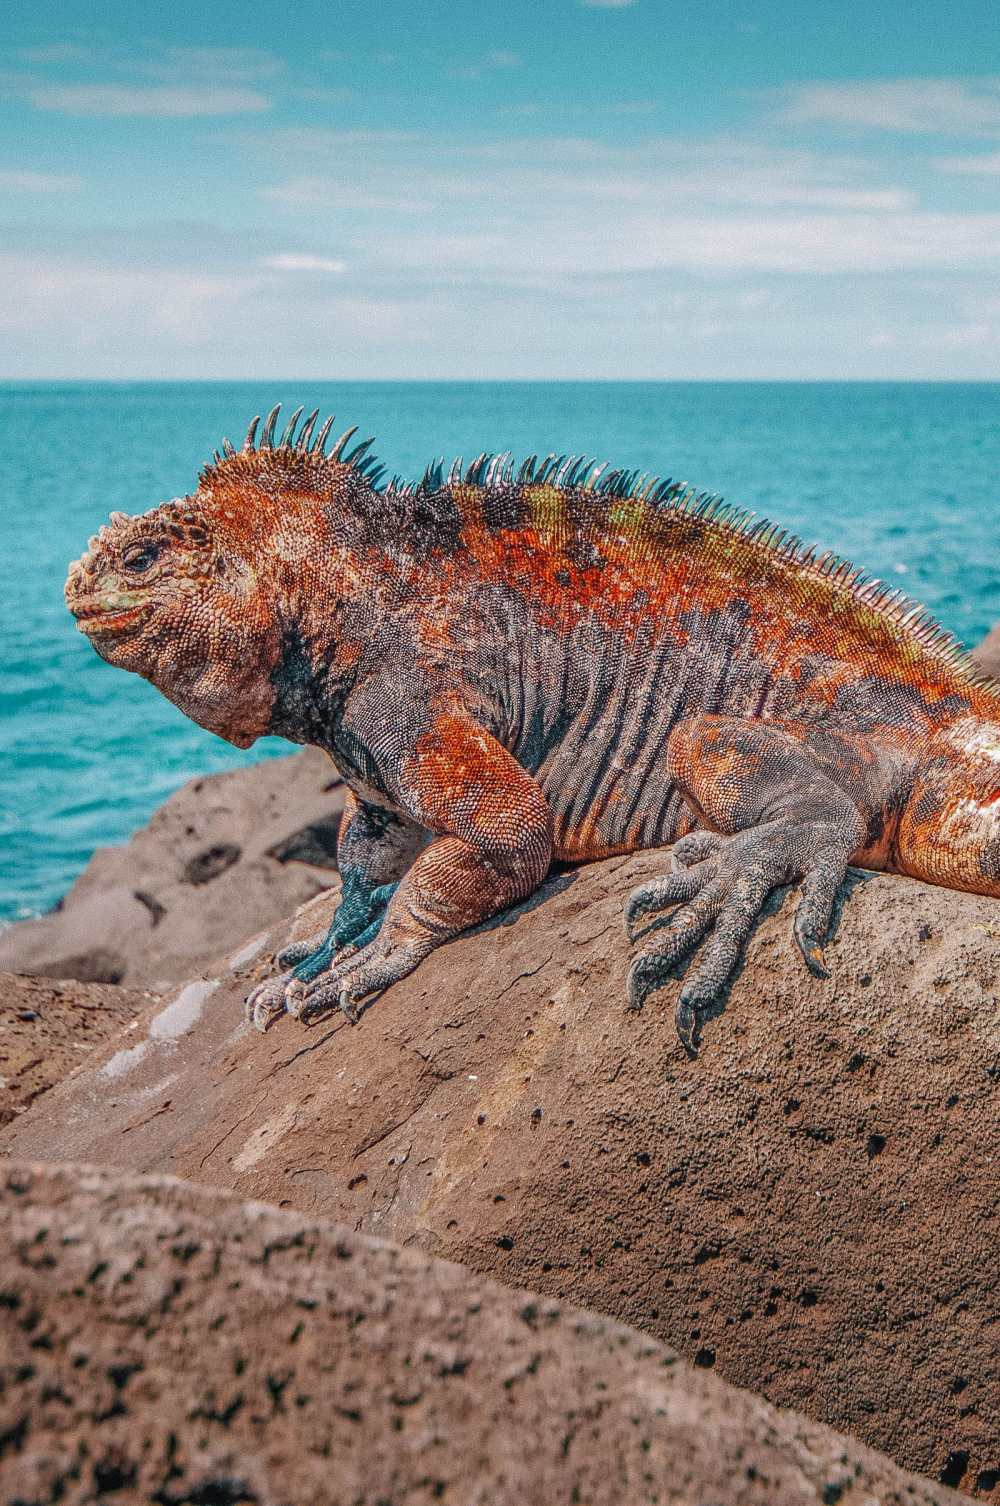 Animals To See In The Galapagos Islands (3)